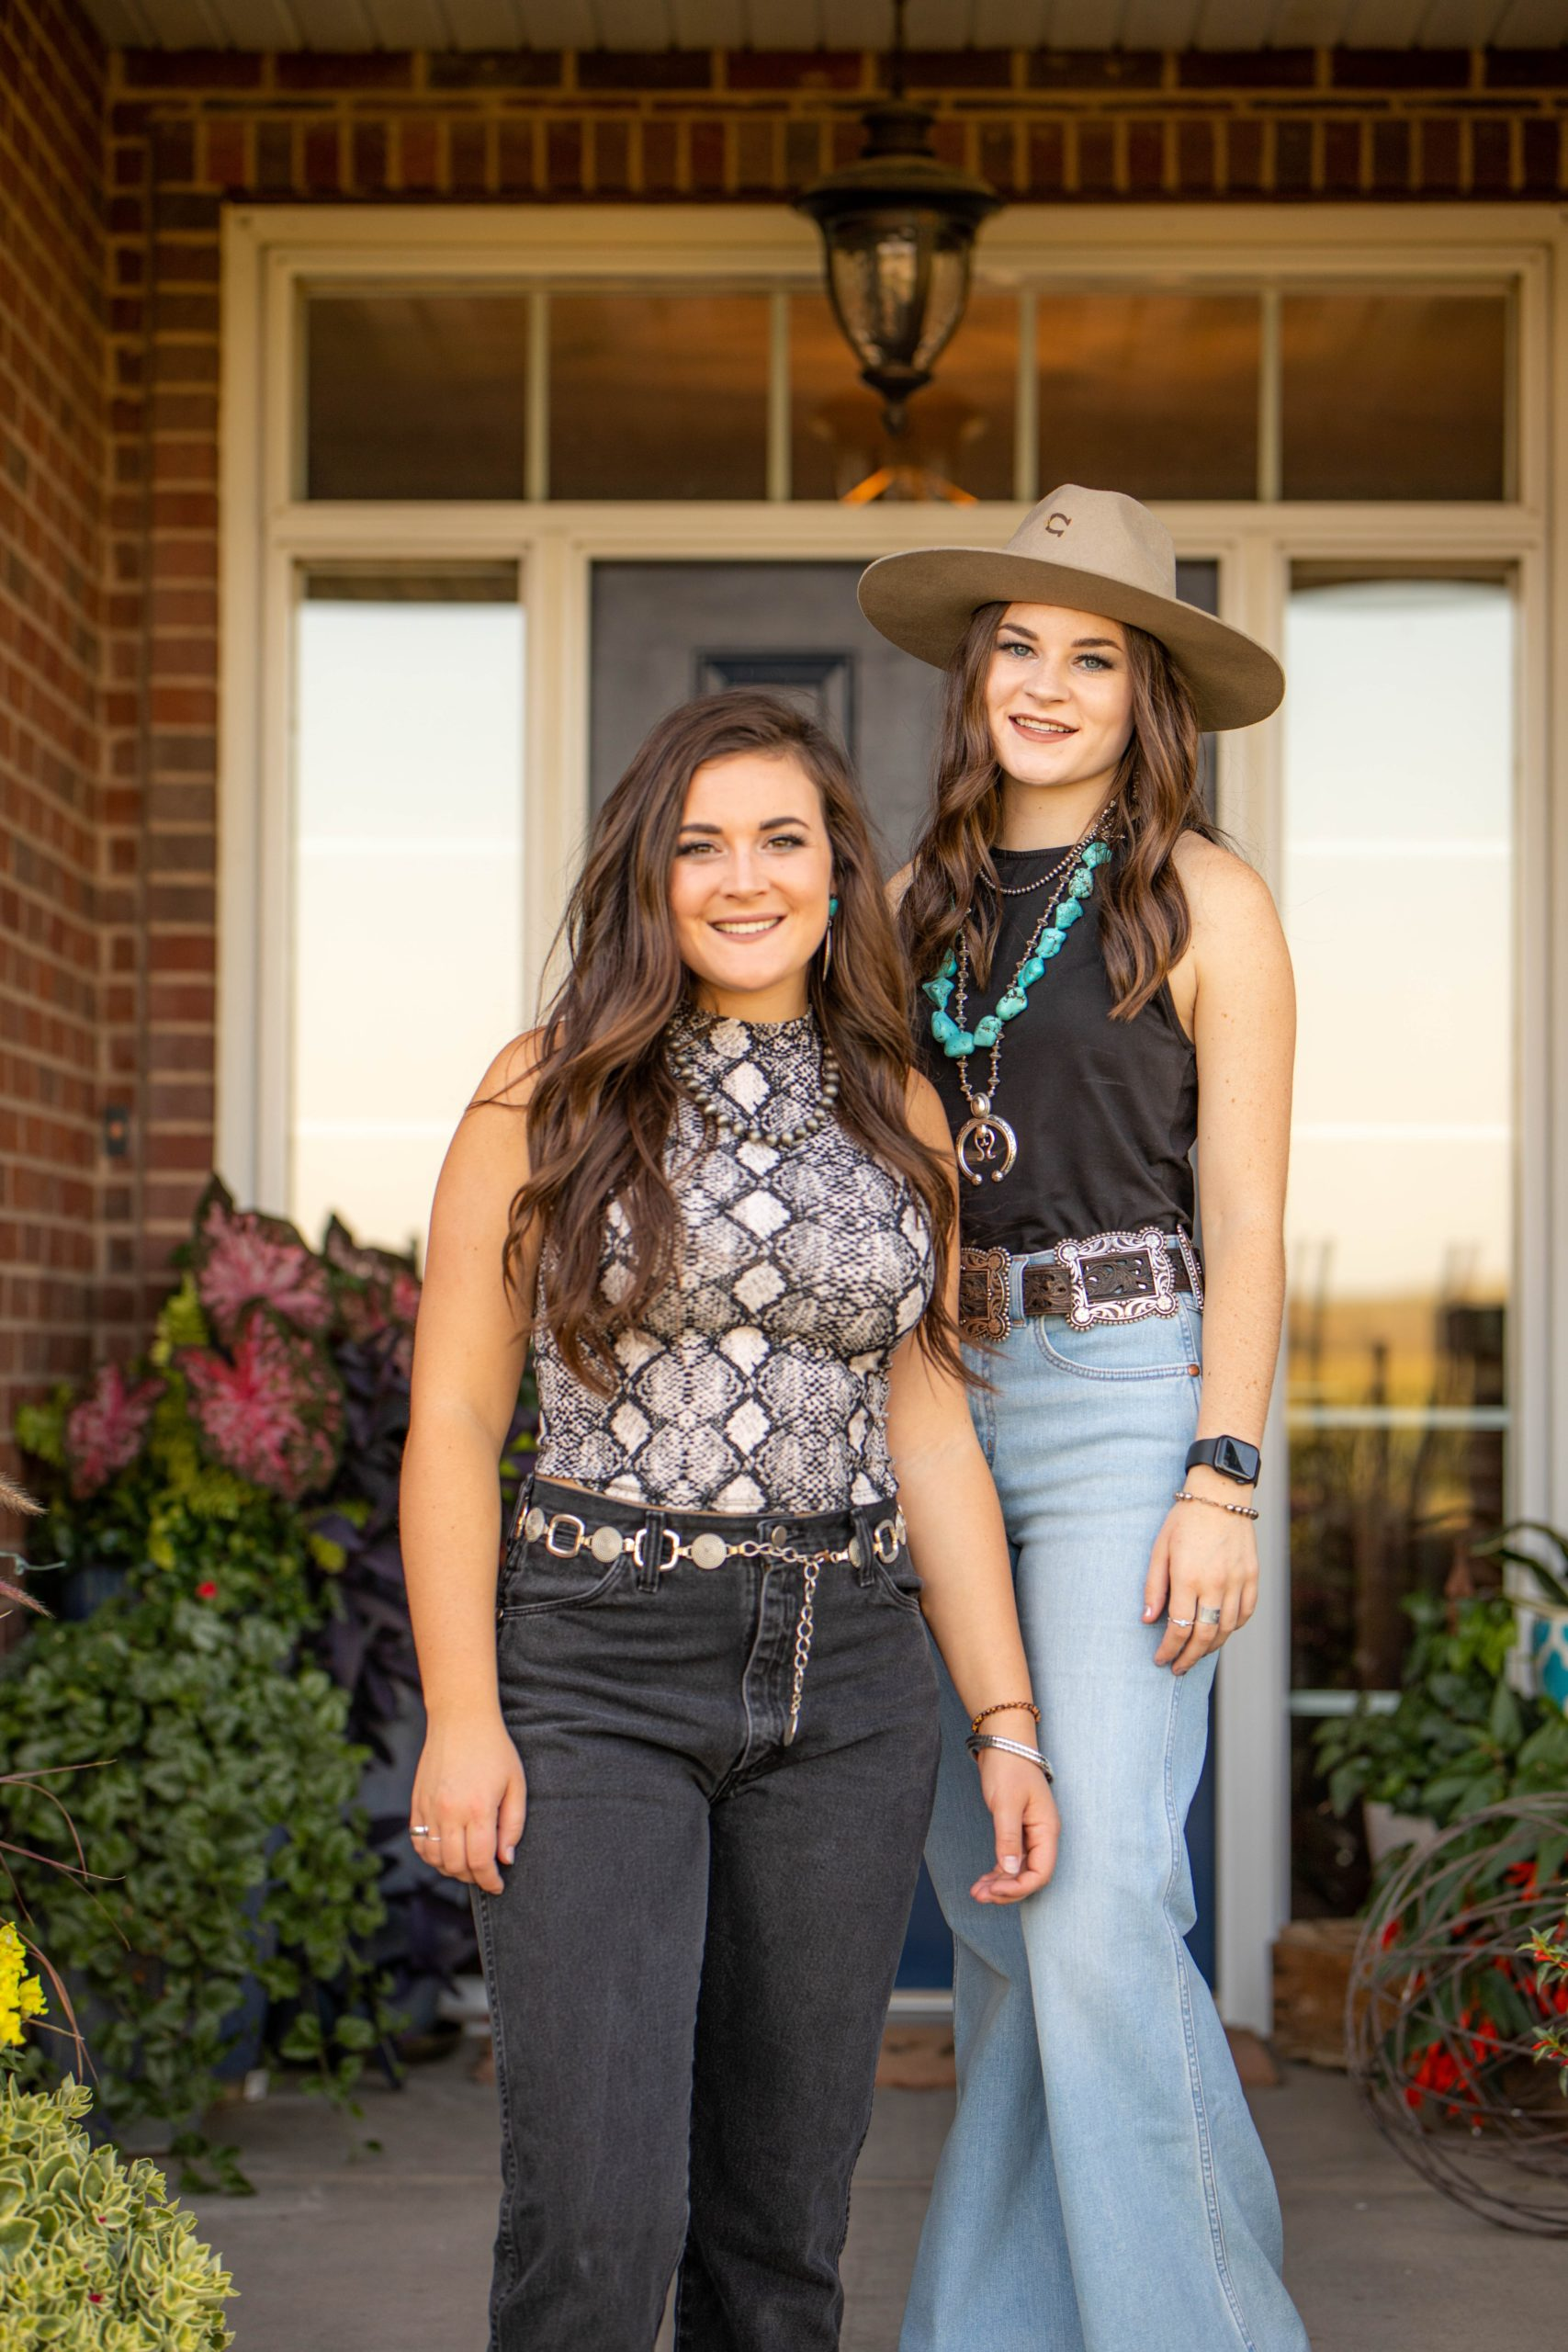 Sisters Mekenzie (left) and Mattison Beattie of Sumner are the founders of Sassy Sisters Swine, a direct-to-consumer pork product business.